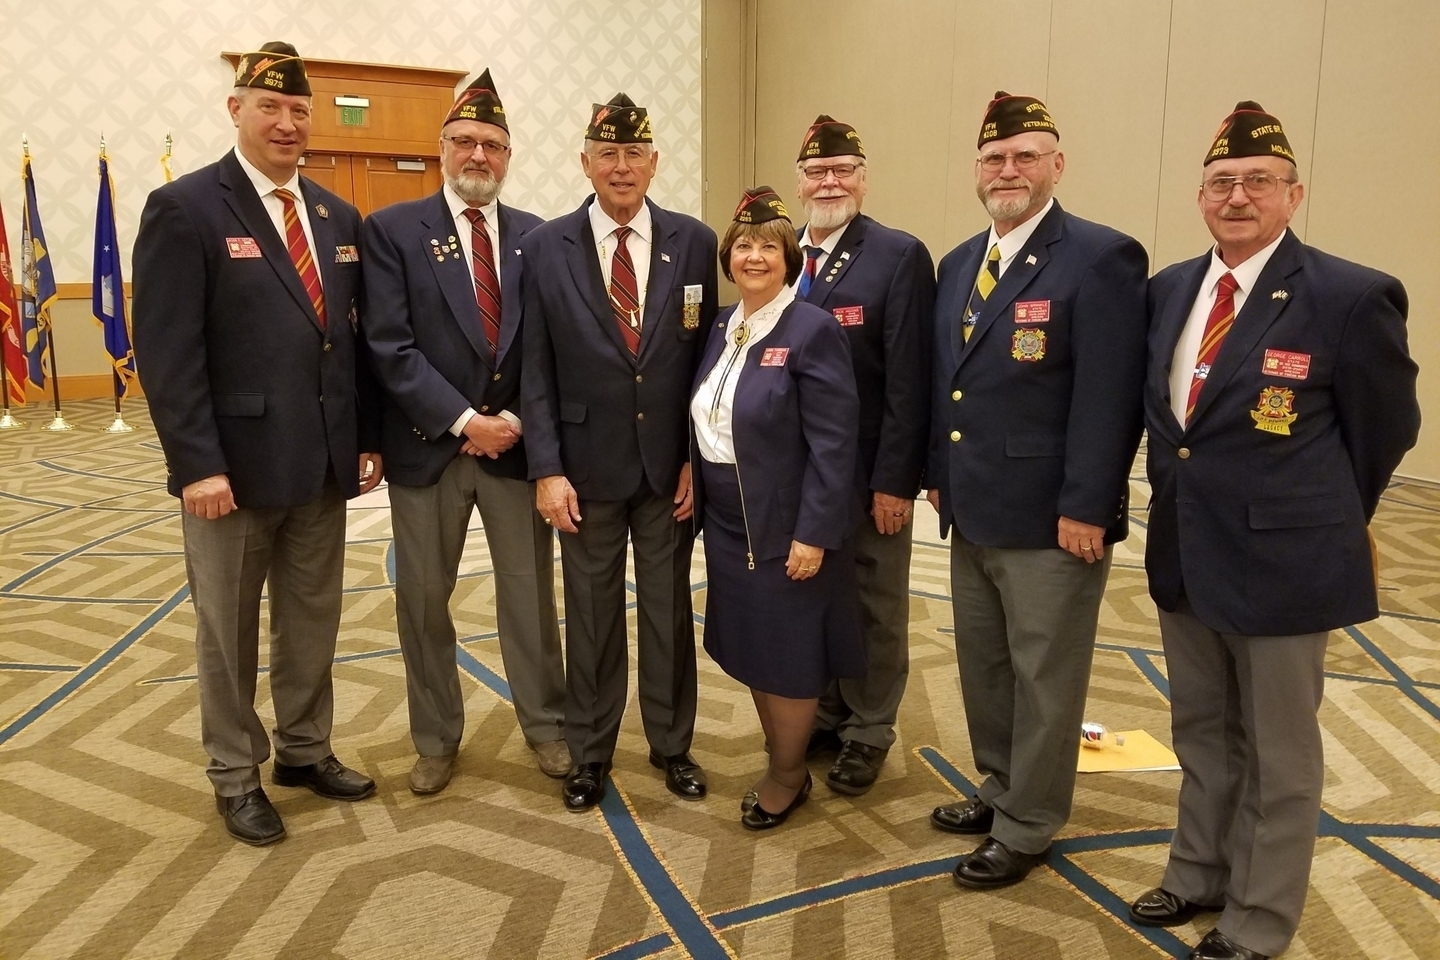 Washington welcomes comrades from the Department of Oregon at the 2019 Convention in Vancouver, WA. June 22, 2019